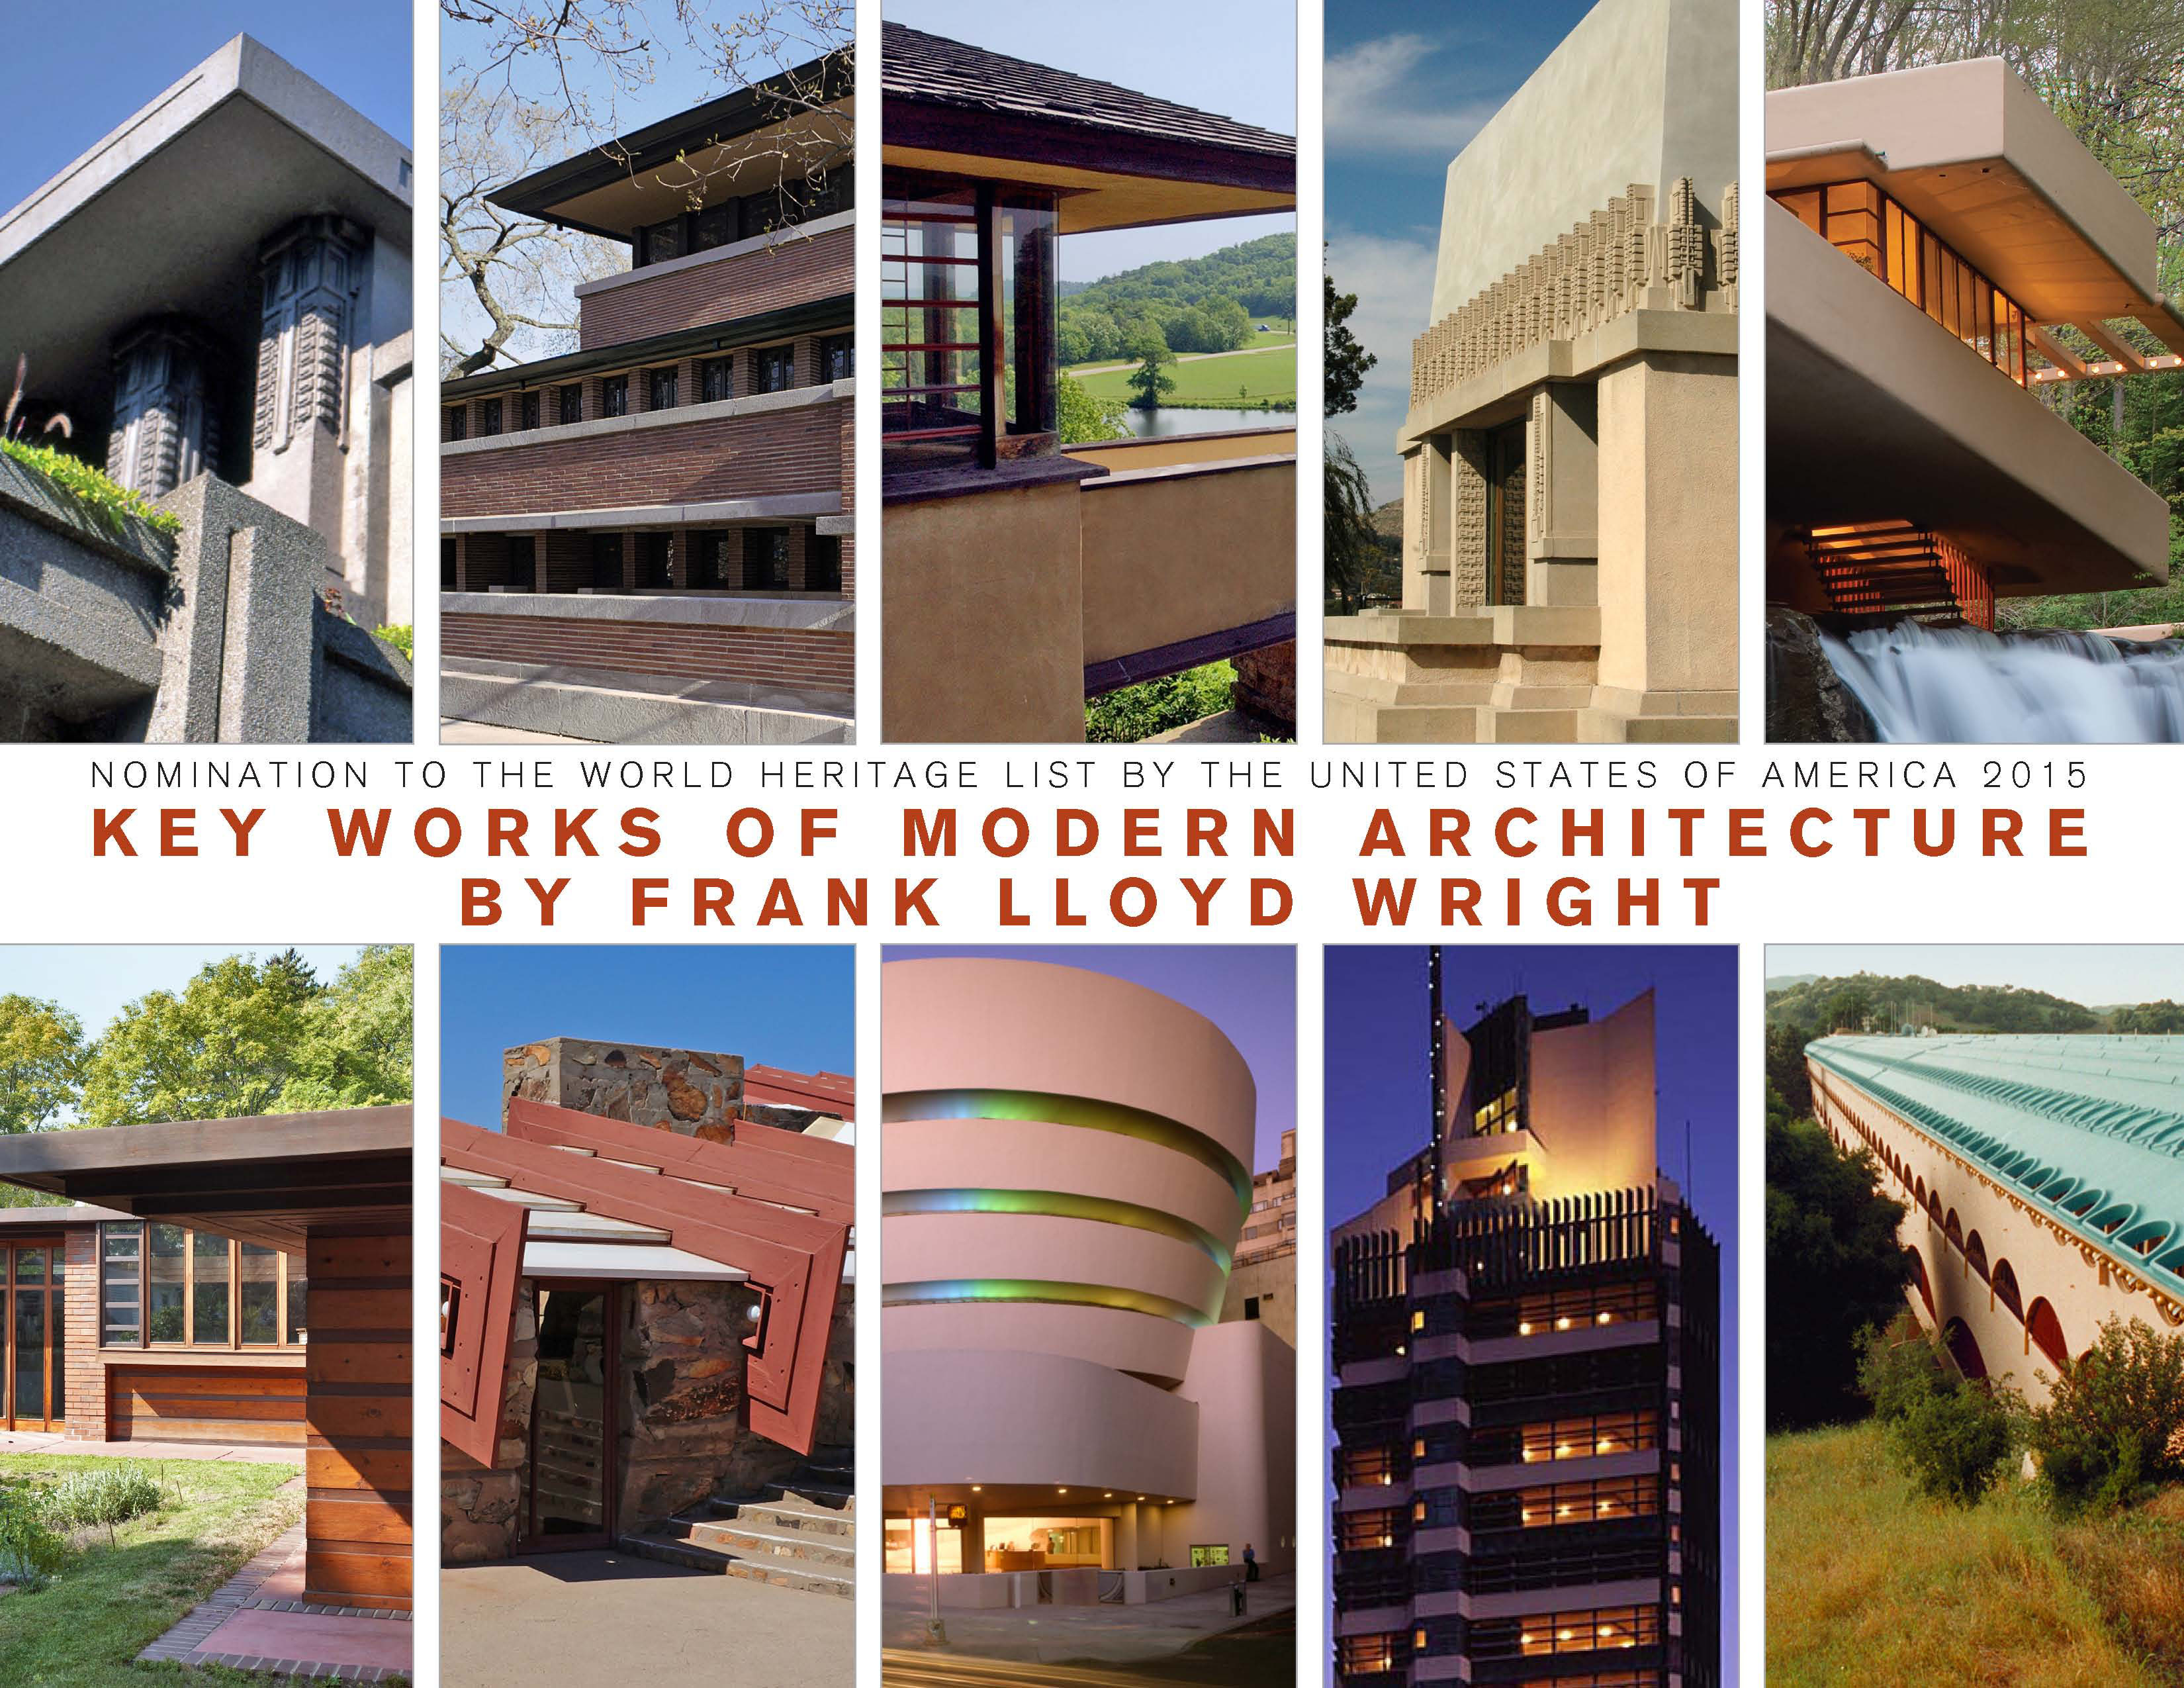 Us Seeks World Heritage Status For Frank Lloyd Wright